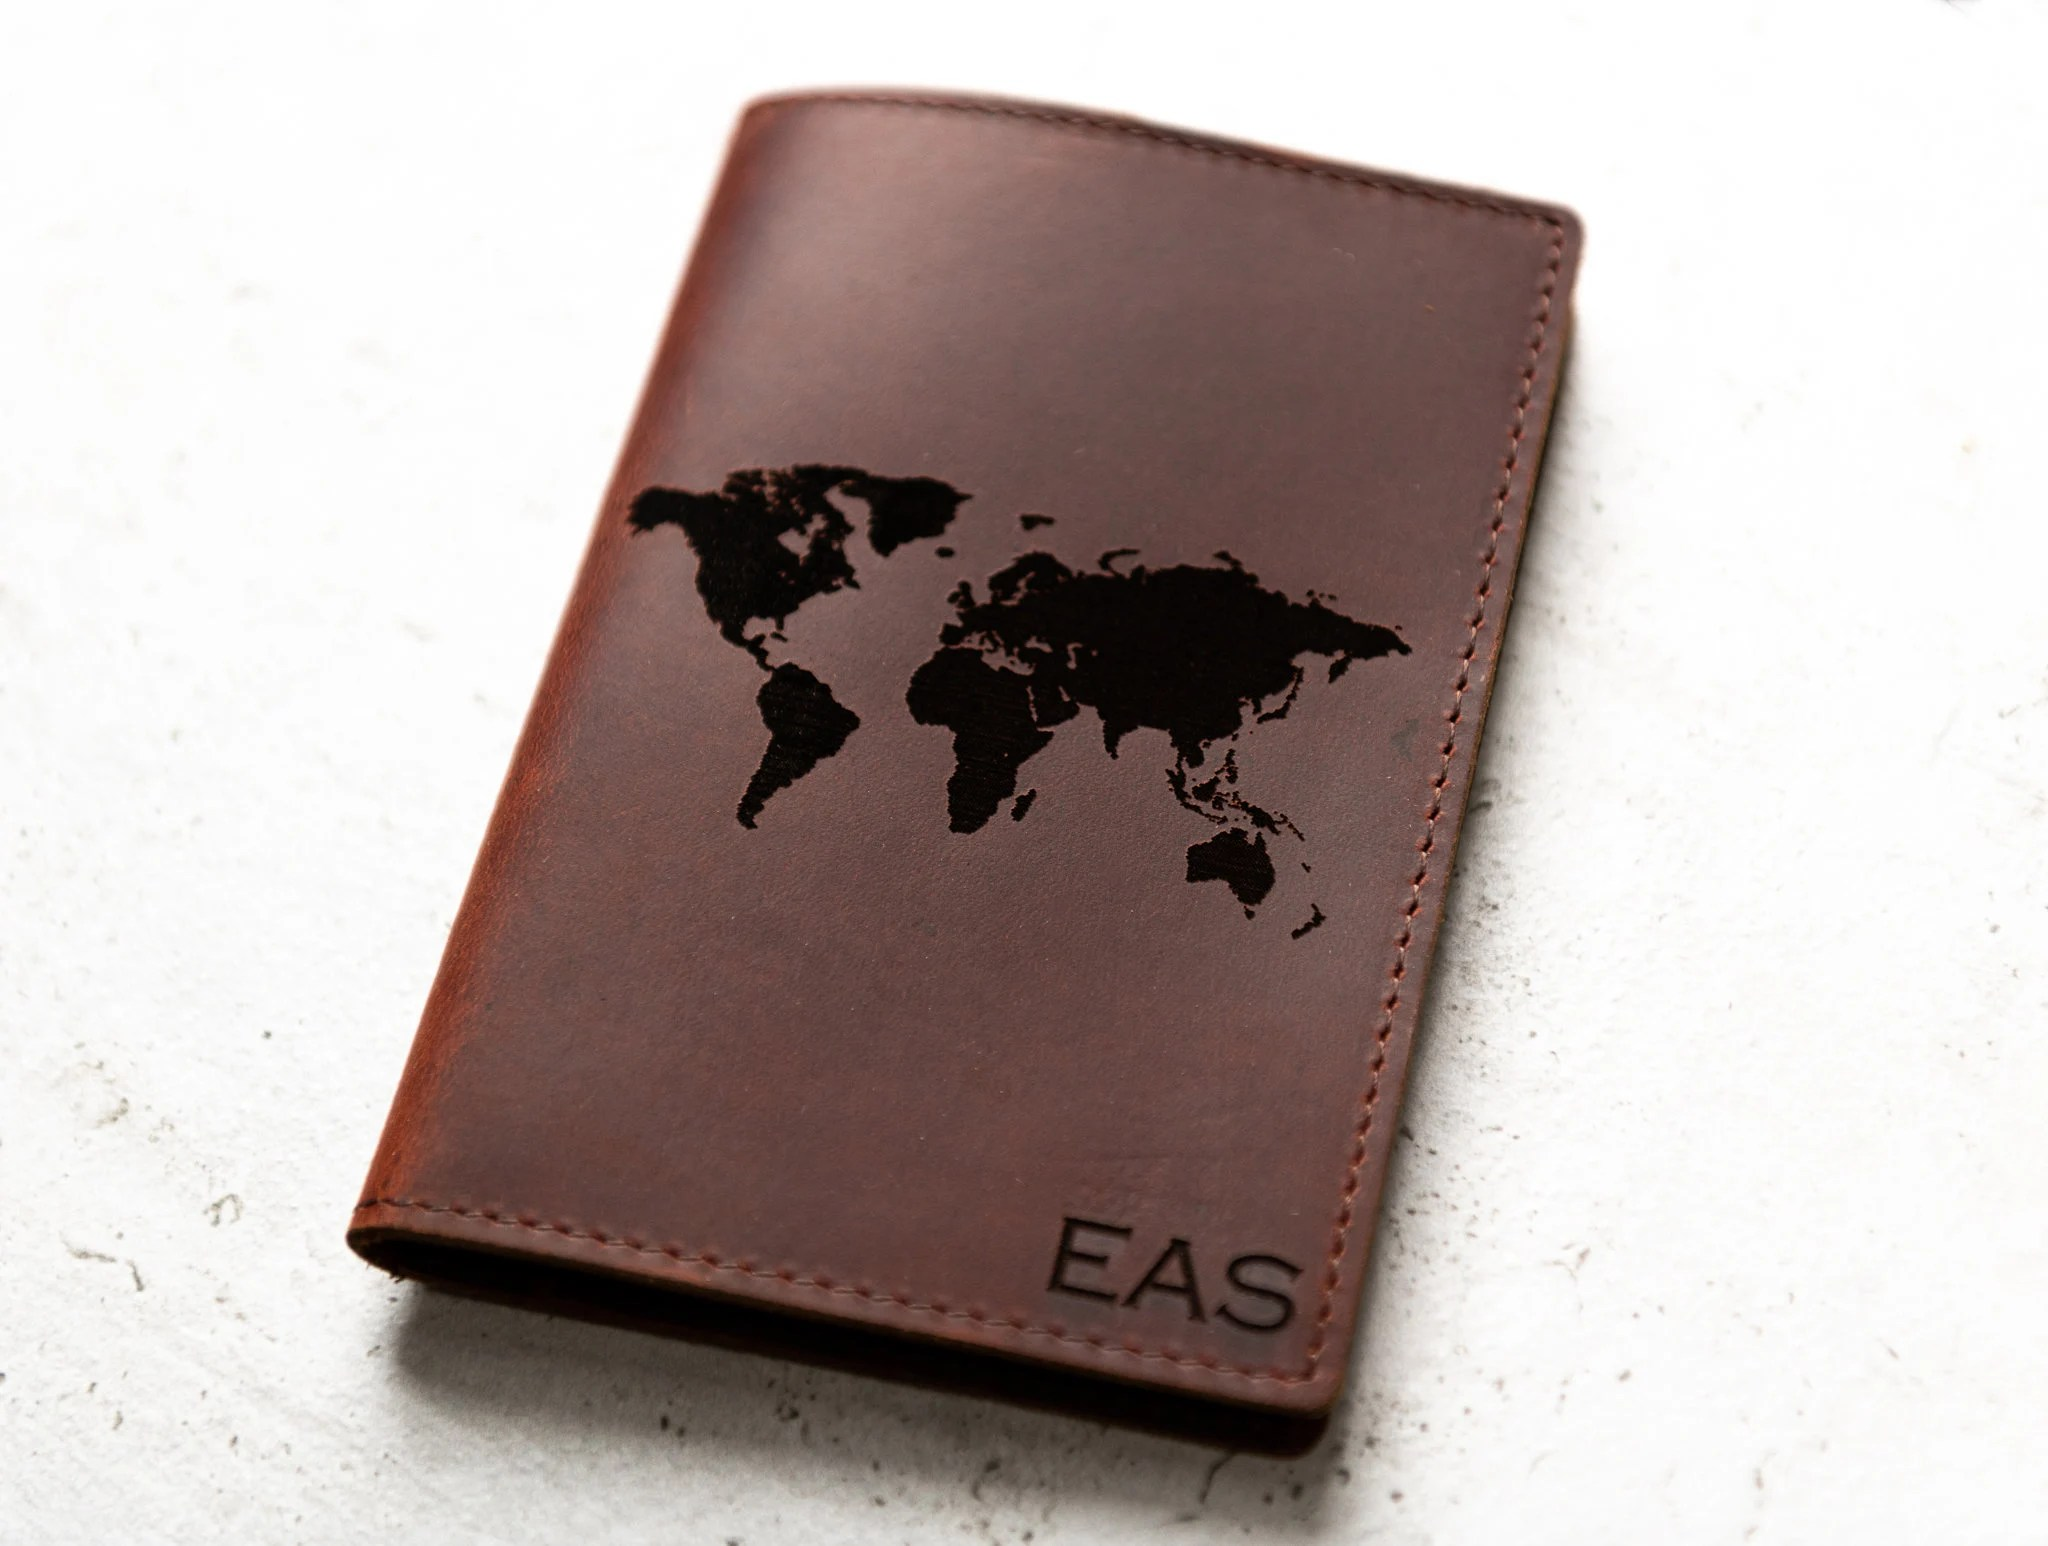 Personalized Leather Passport Cover Holder by Left Coast image 4